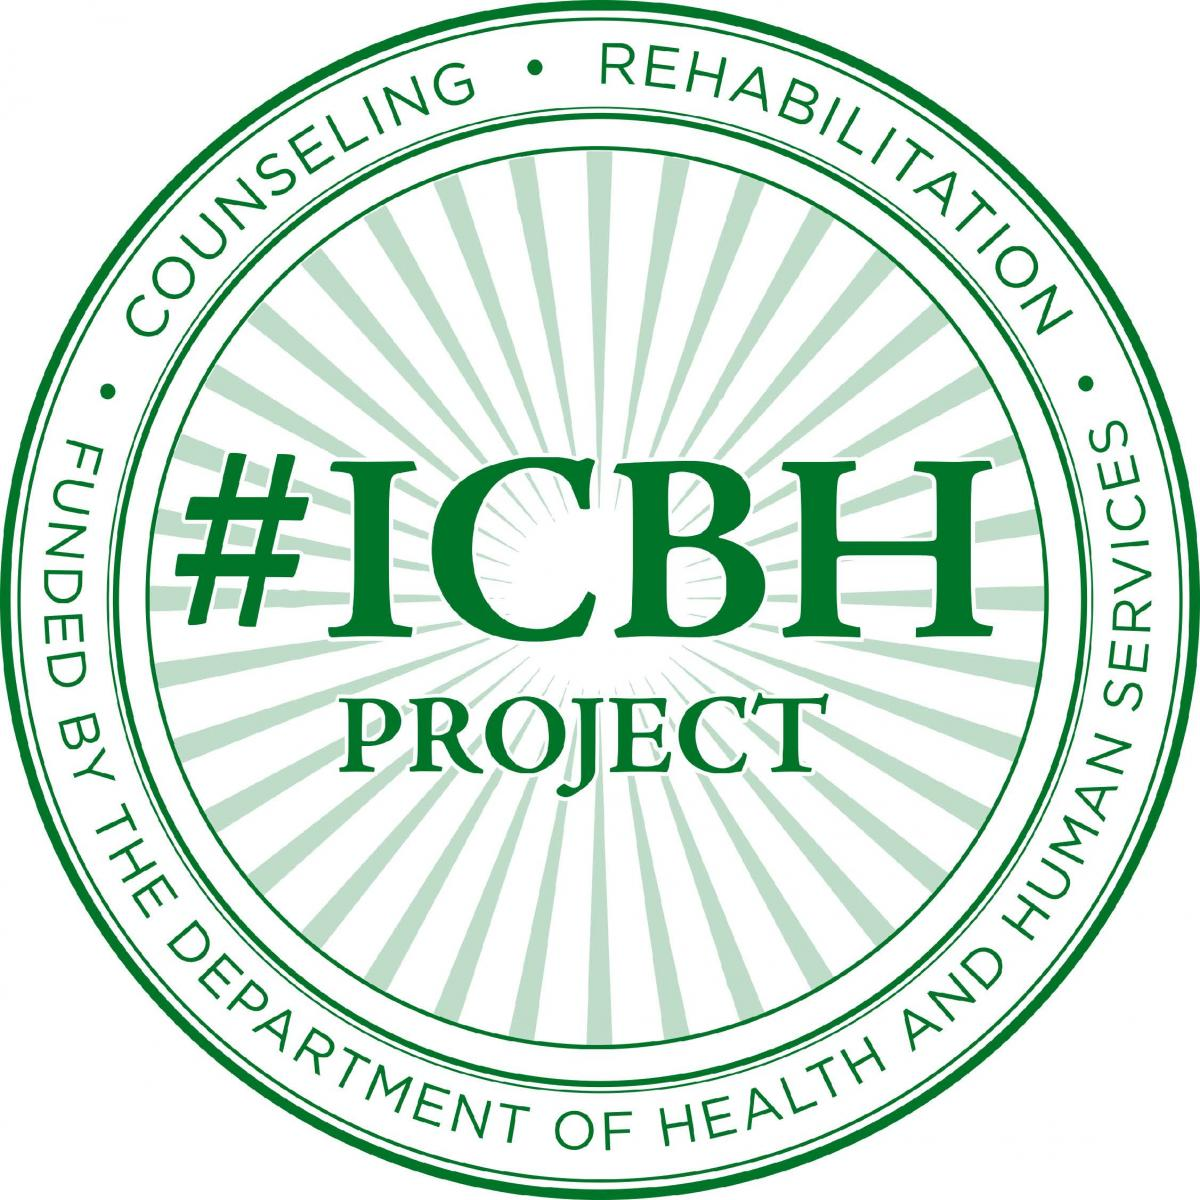 ICBH Project